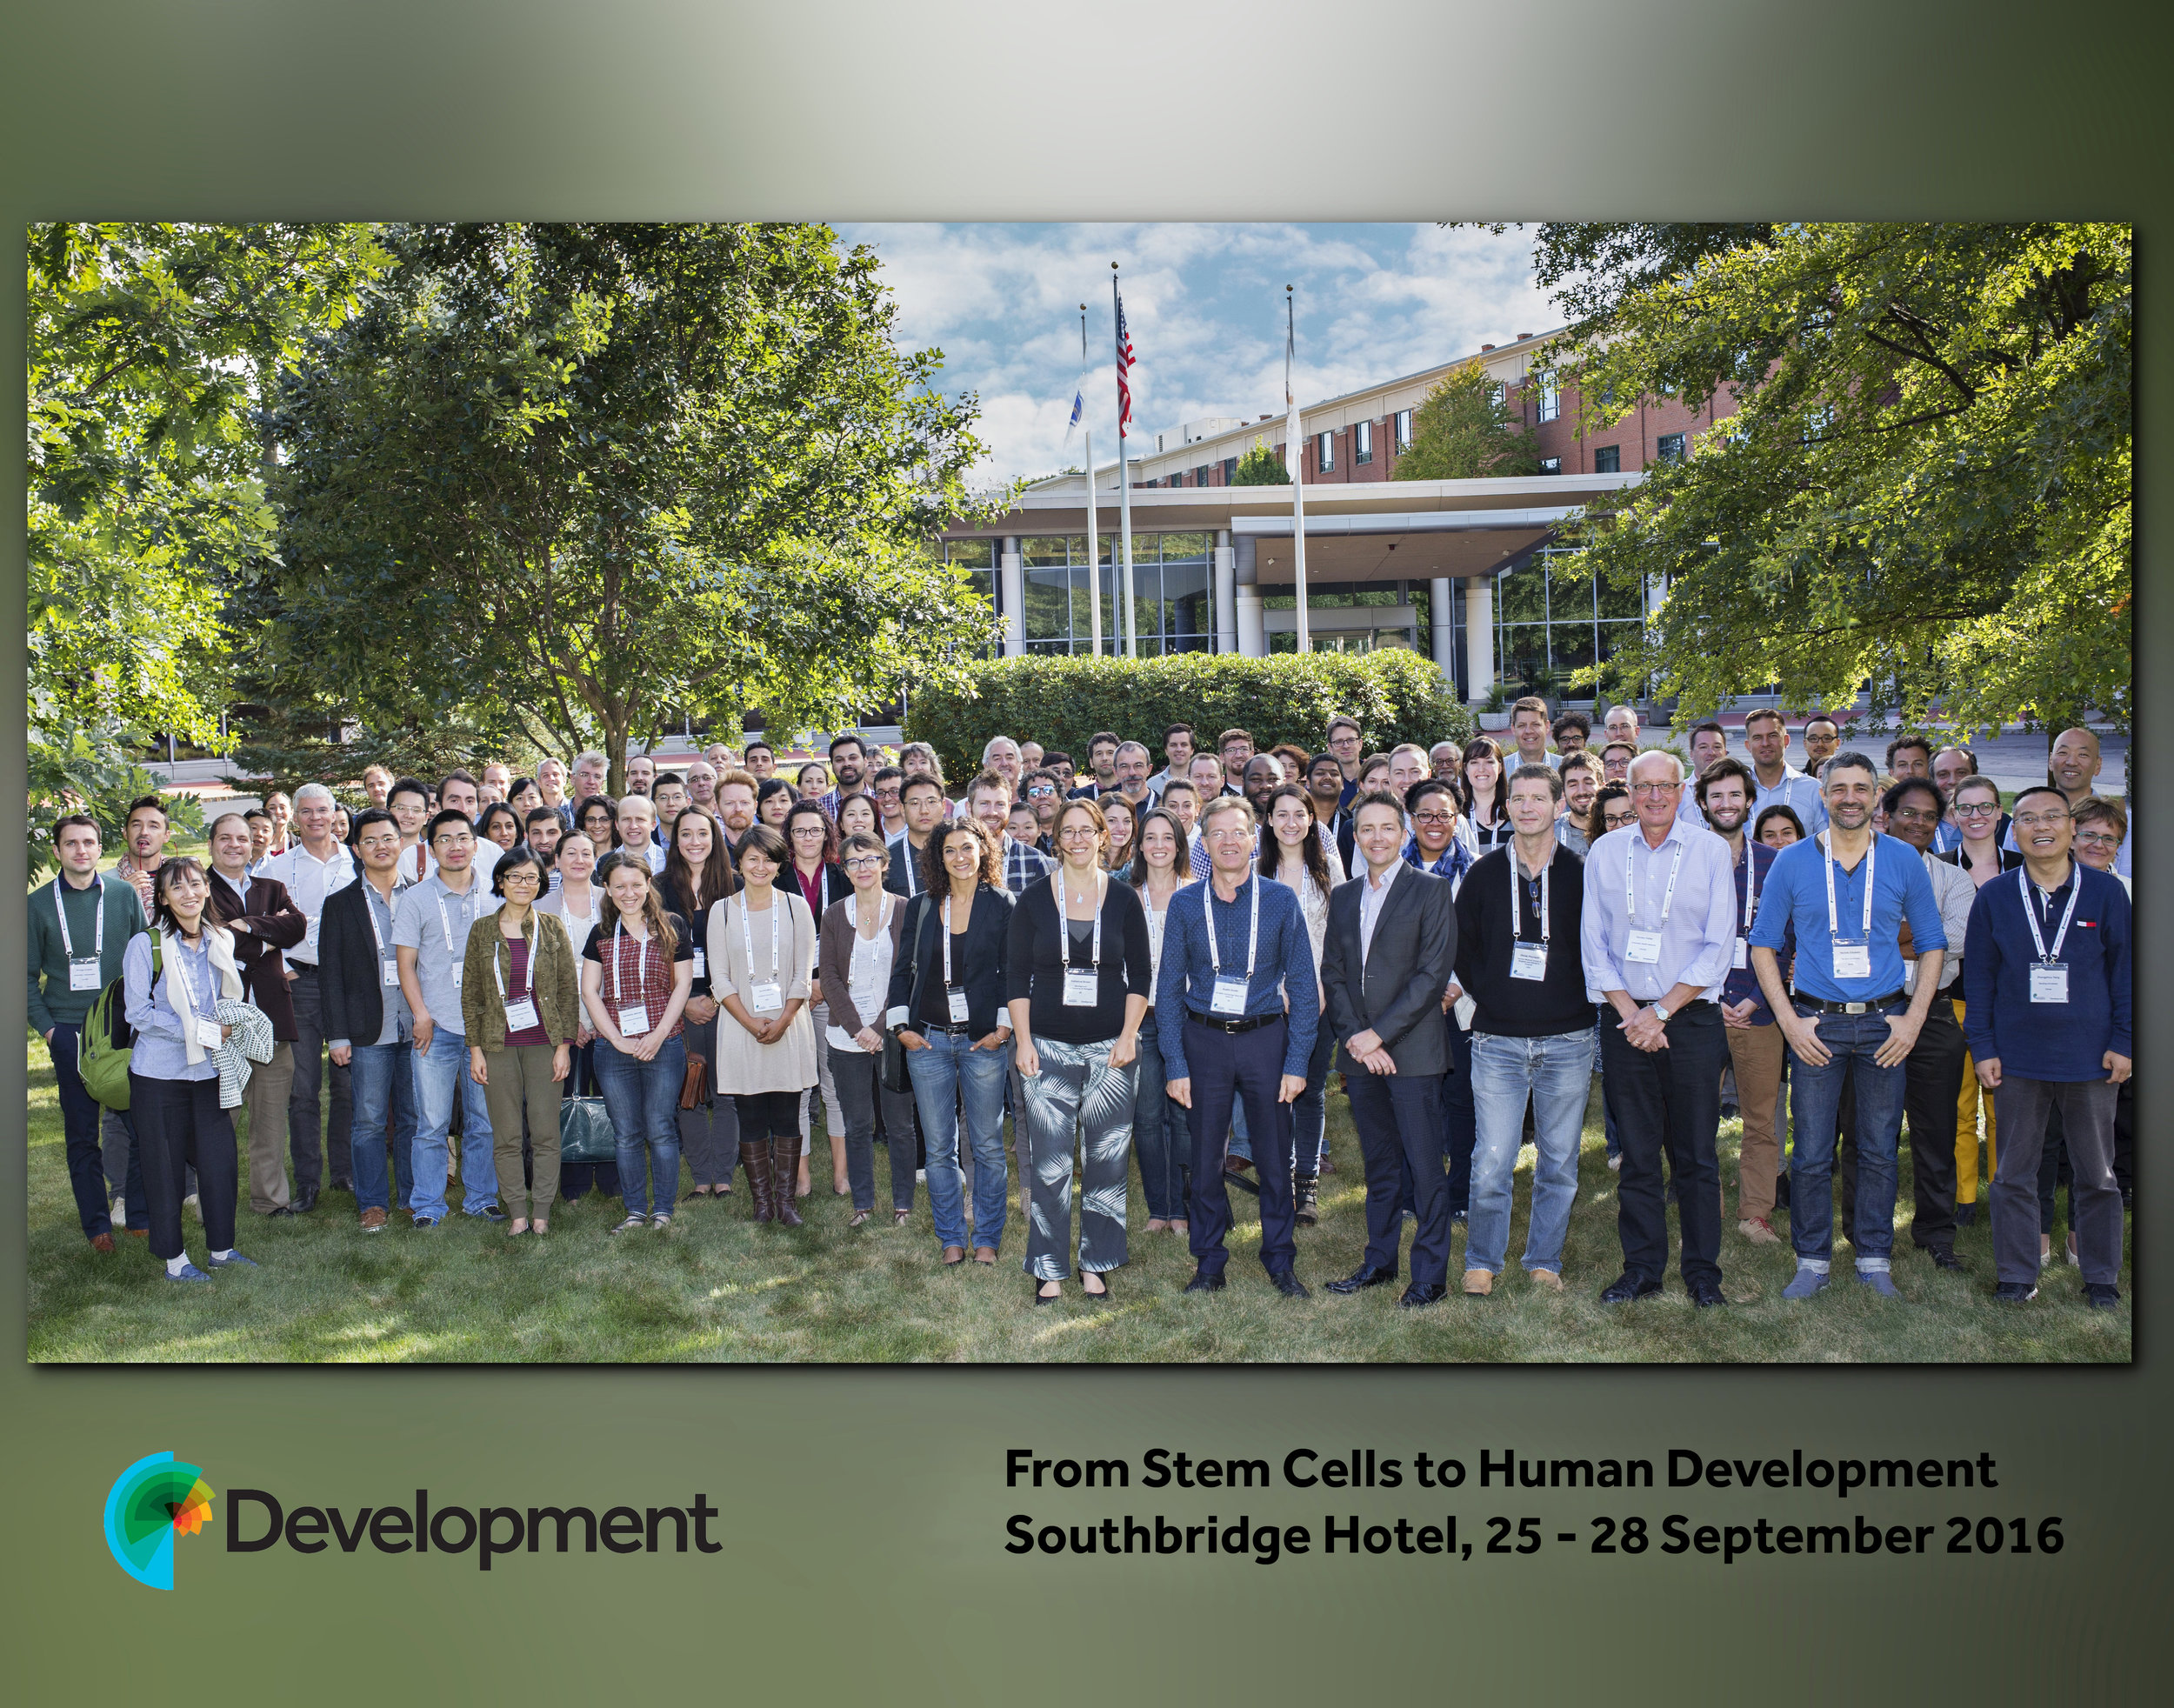 September, 2017 - The Company of Biologists Human Development Meeting